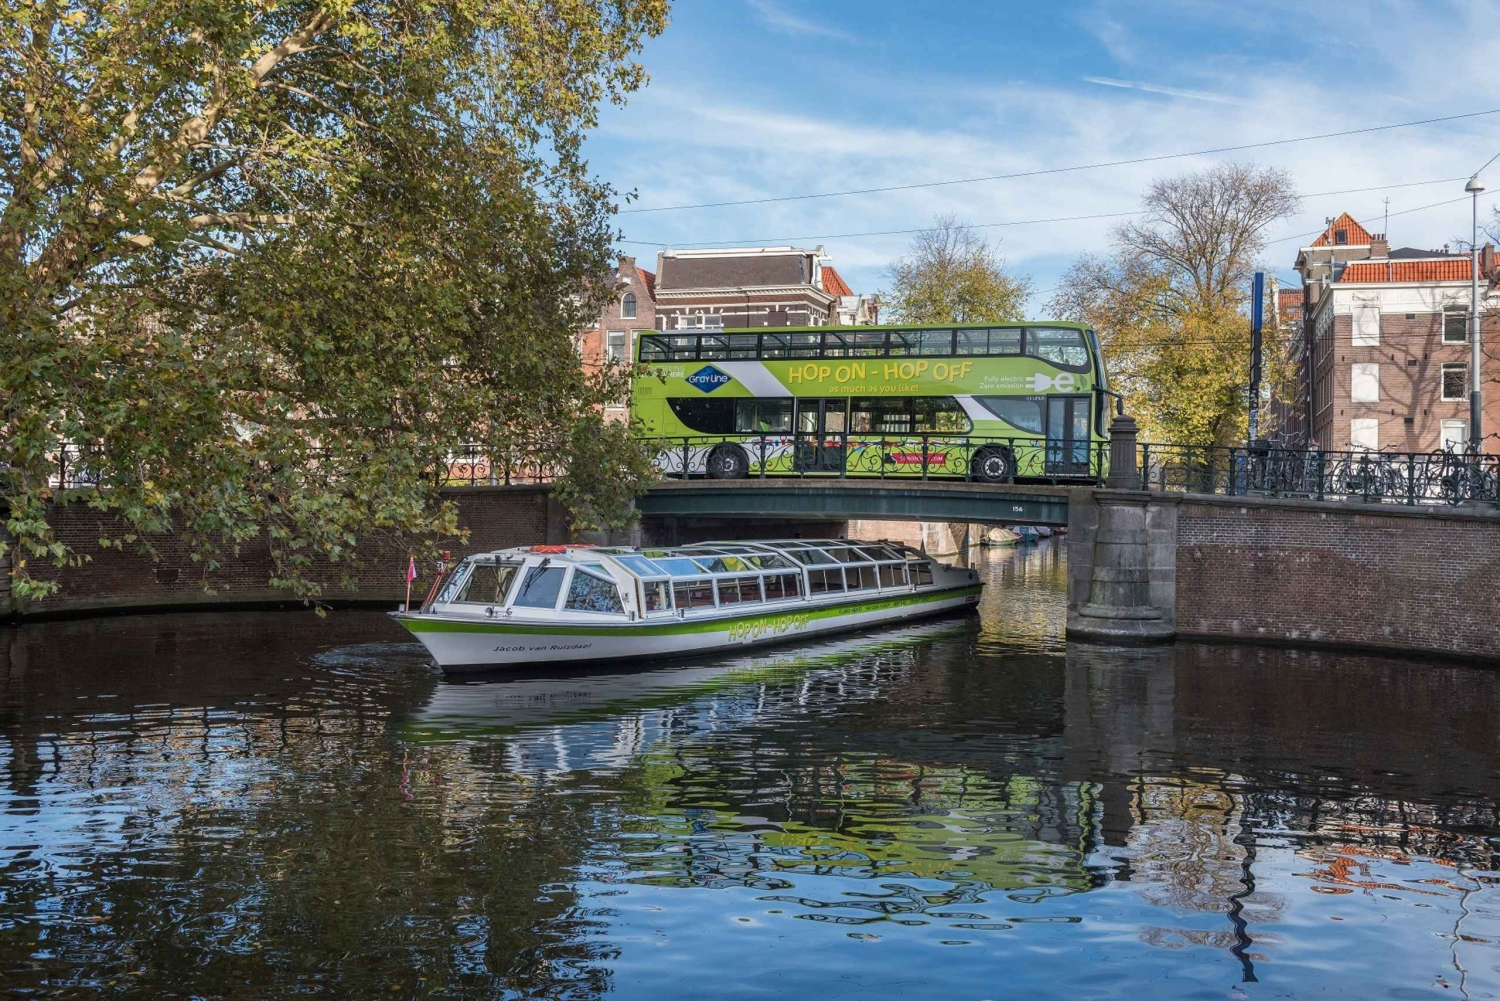 Hop-on Hop-off Bus & Boat Sightseeing Tours